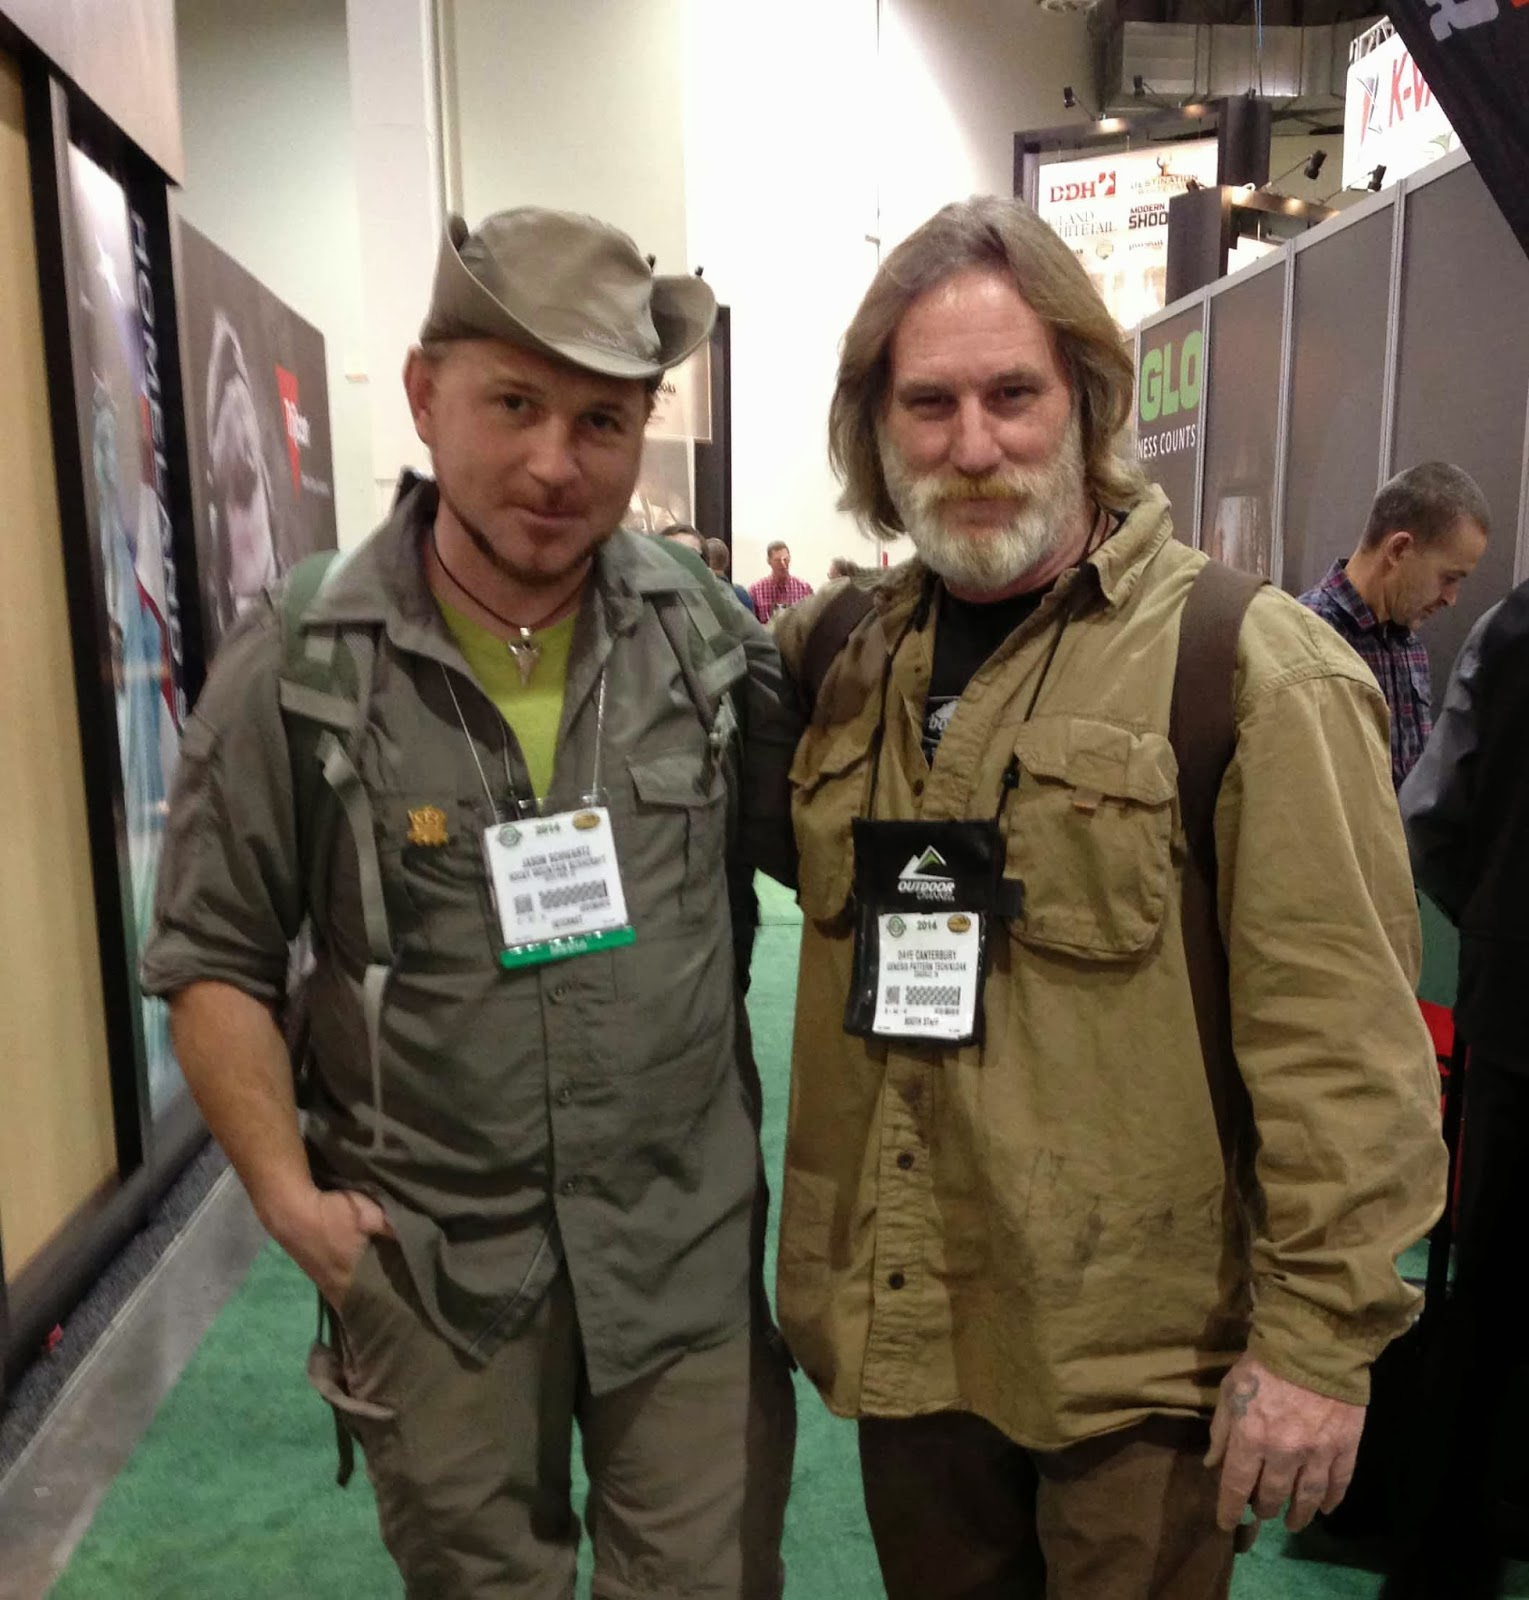 Rocky mountain bushcraft shot show 2014 first impression review - Got A Chance To Meet Dave Canterbury At The Show Very Down To Earth Guy And I Enjoyed Chatting With Him Rmb Will Be Reviewing One Of Dave S New Survival